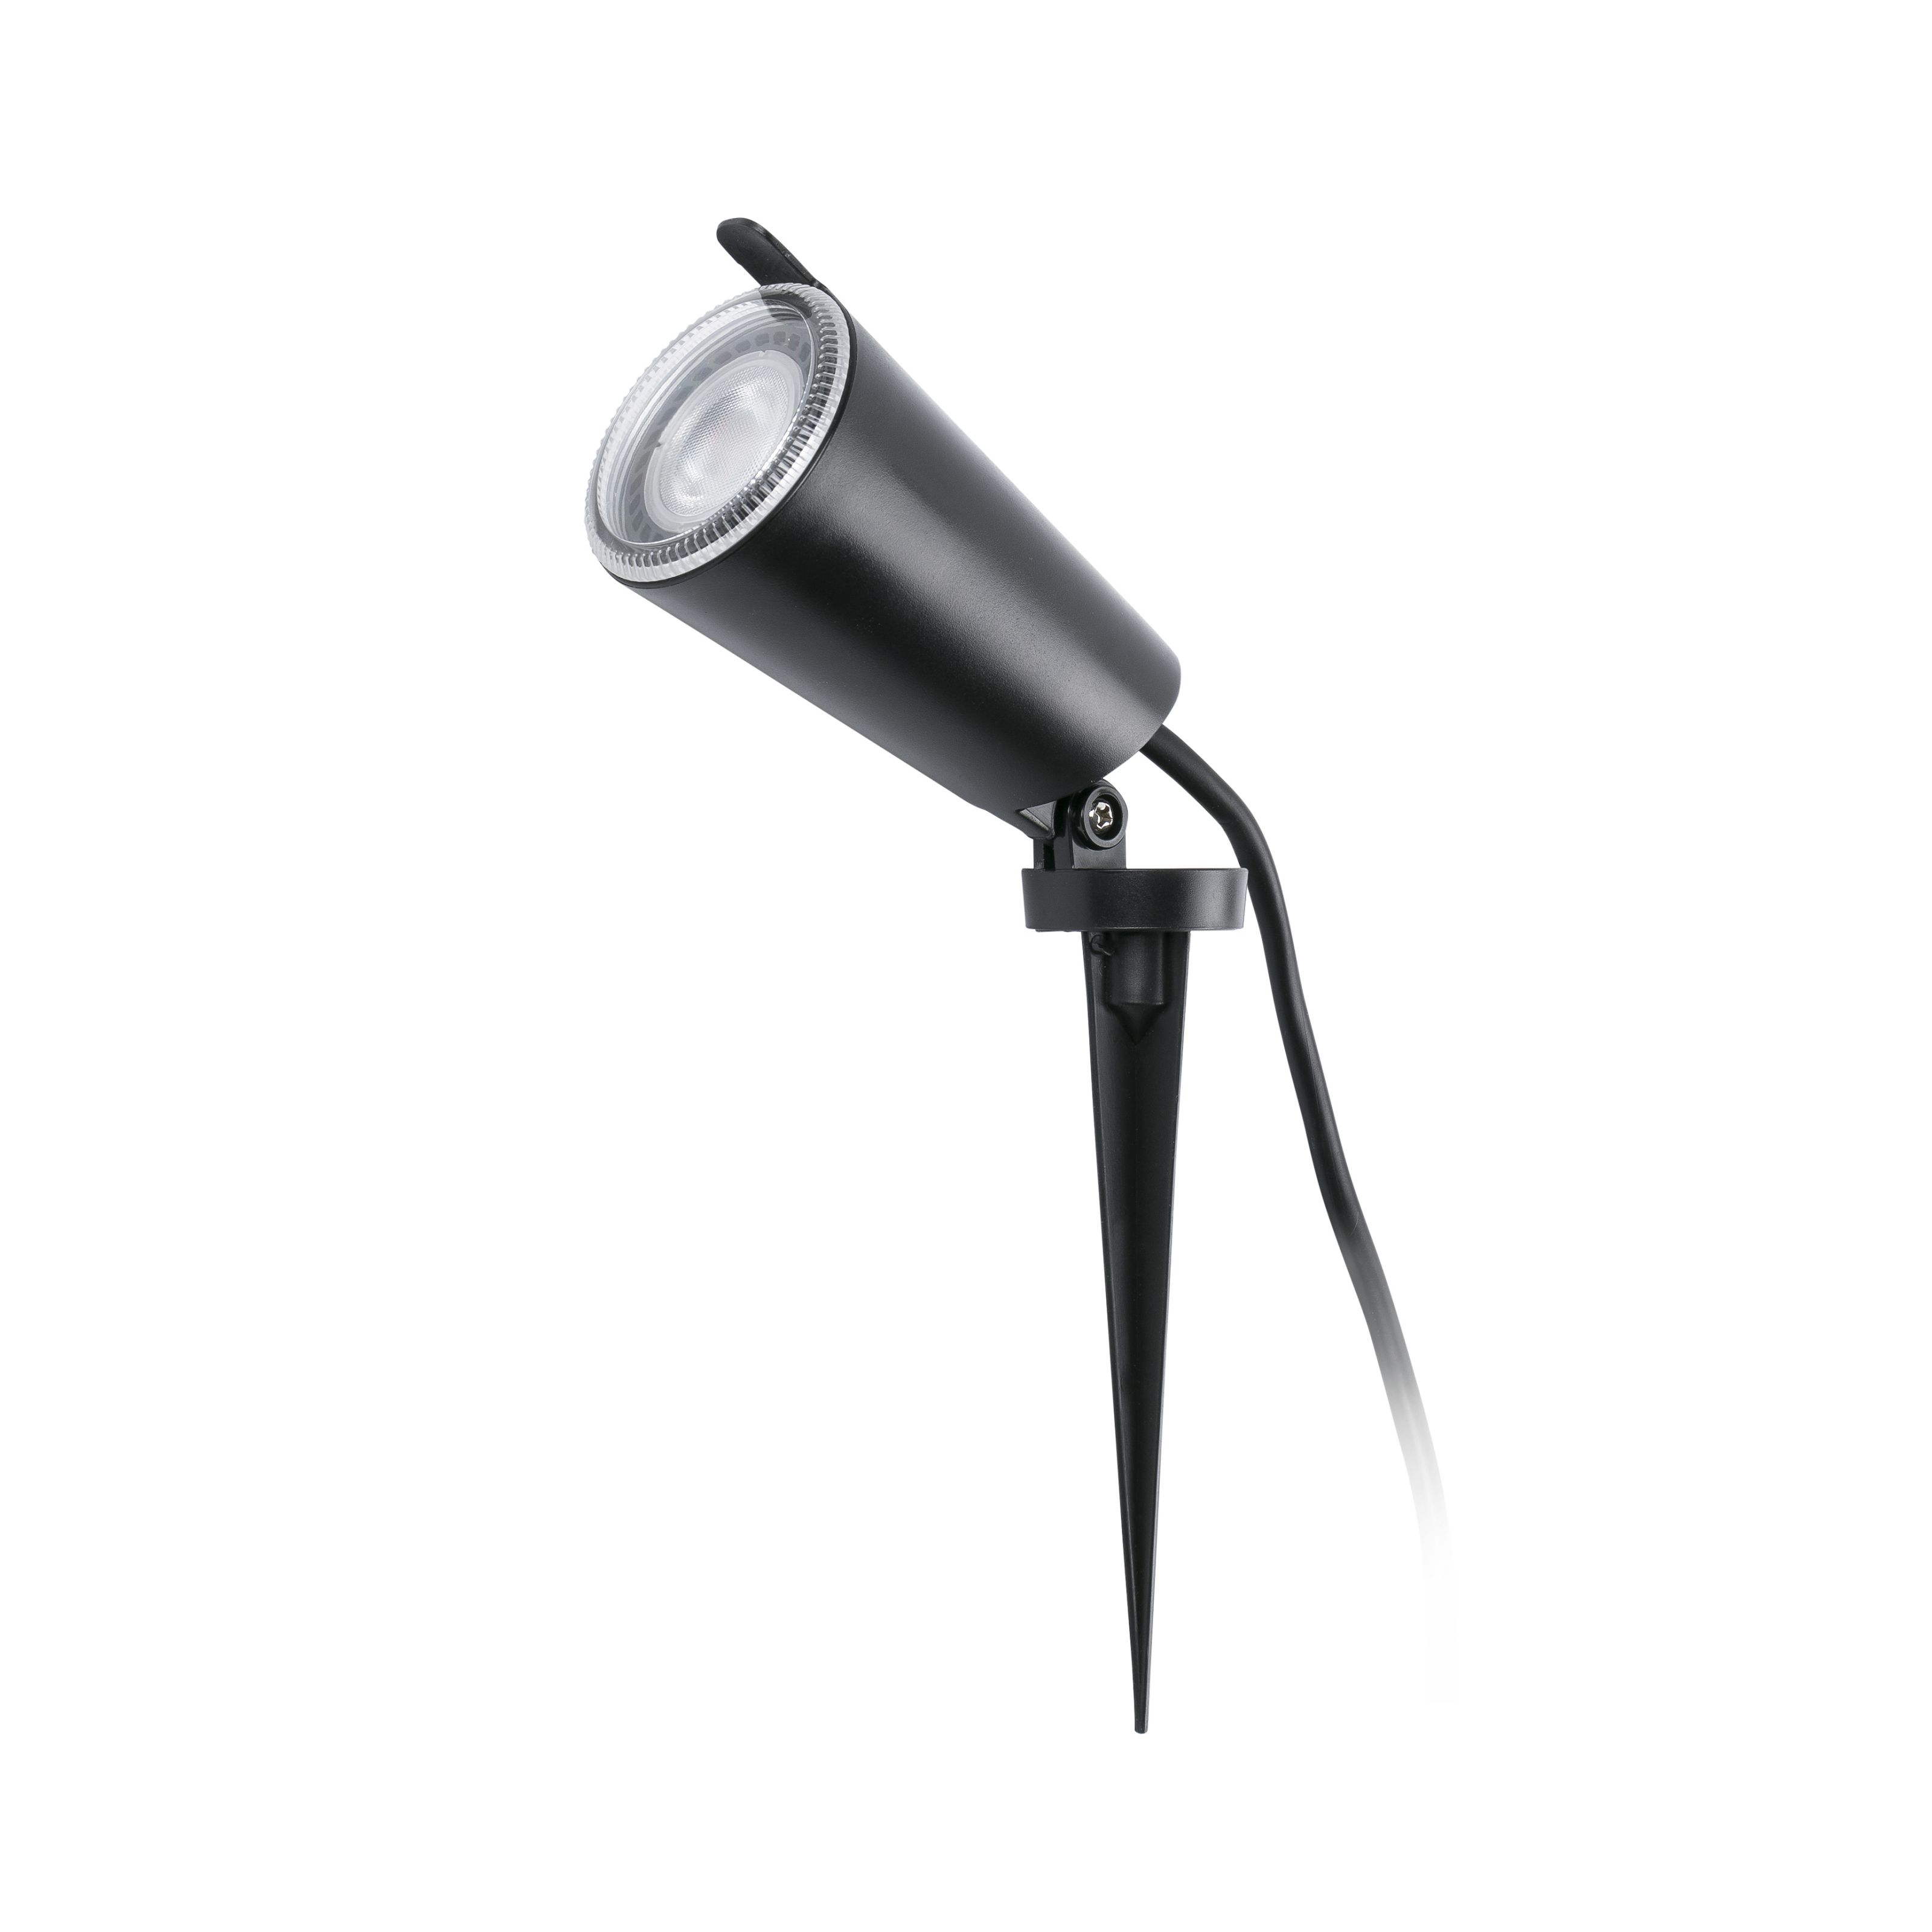 Toni Aplique/Estaca Exterior LED GU10 8W IP65 Negro